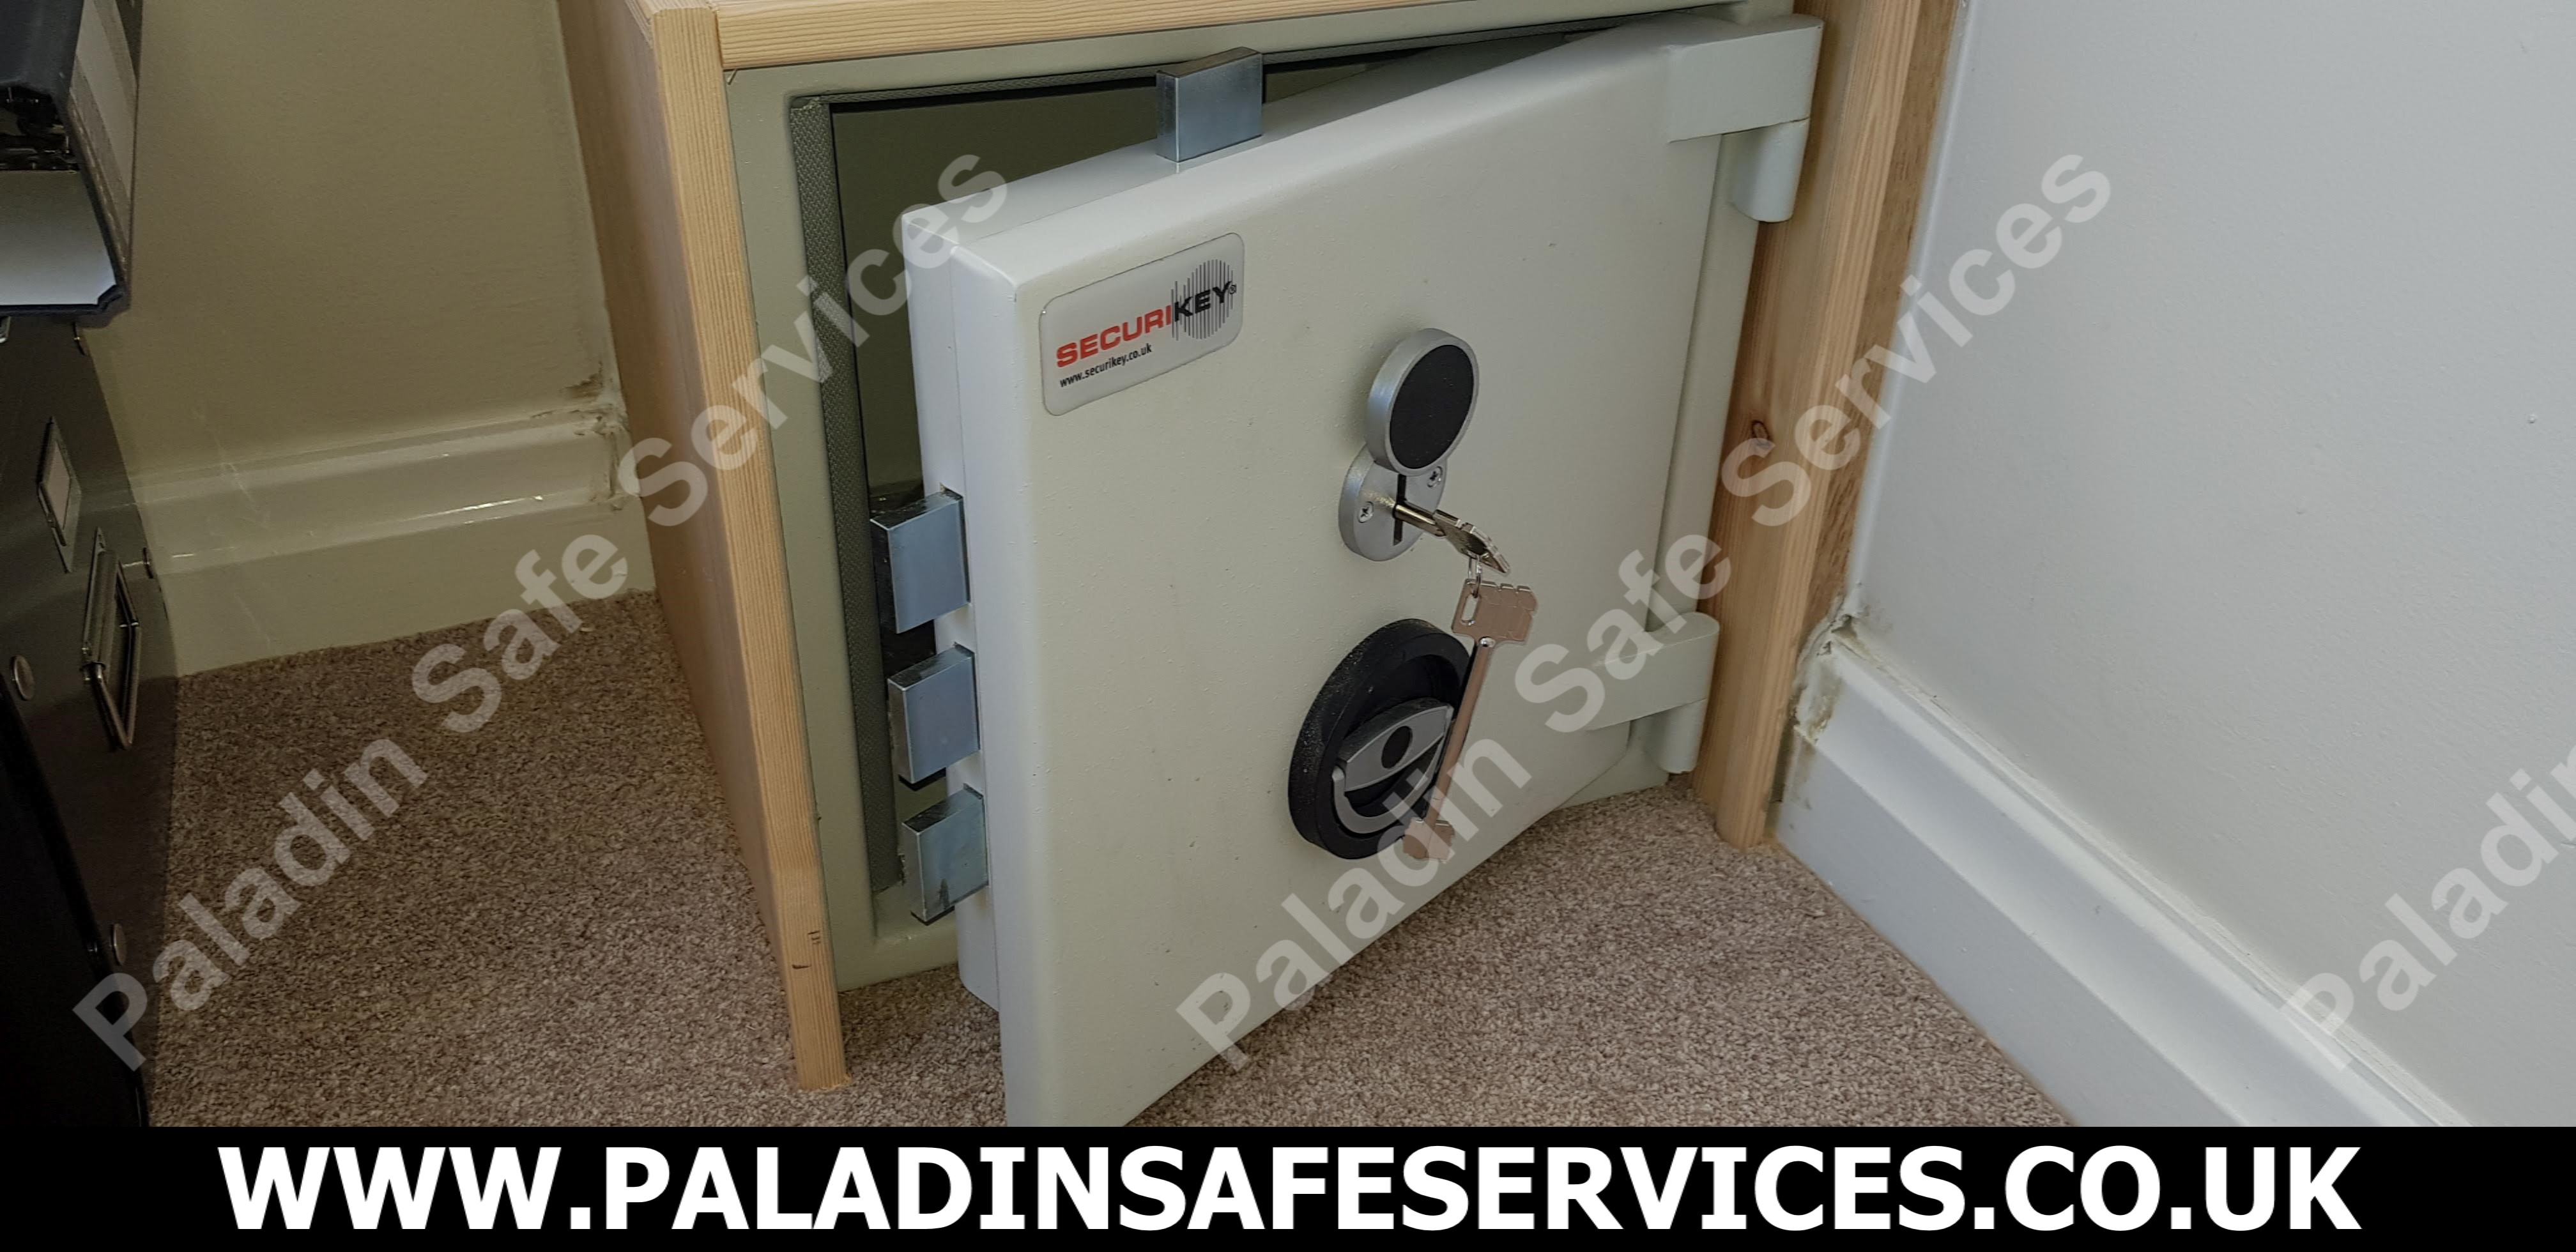 Securikey Safe Cracking